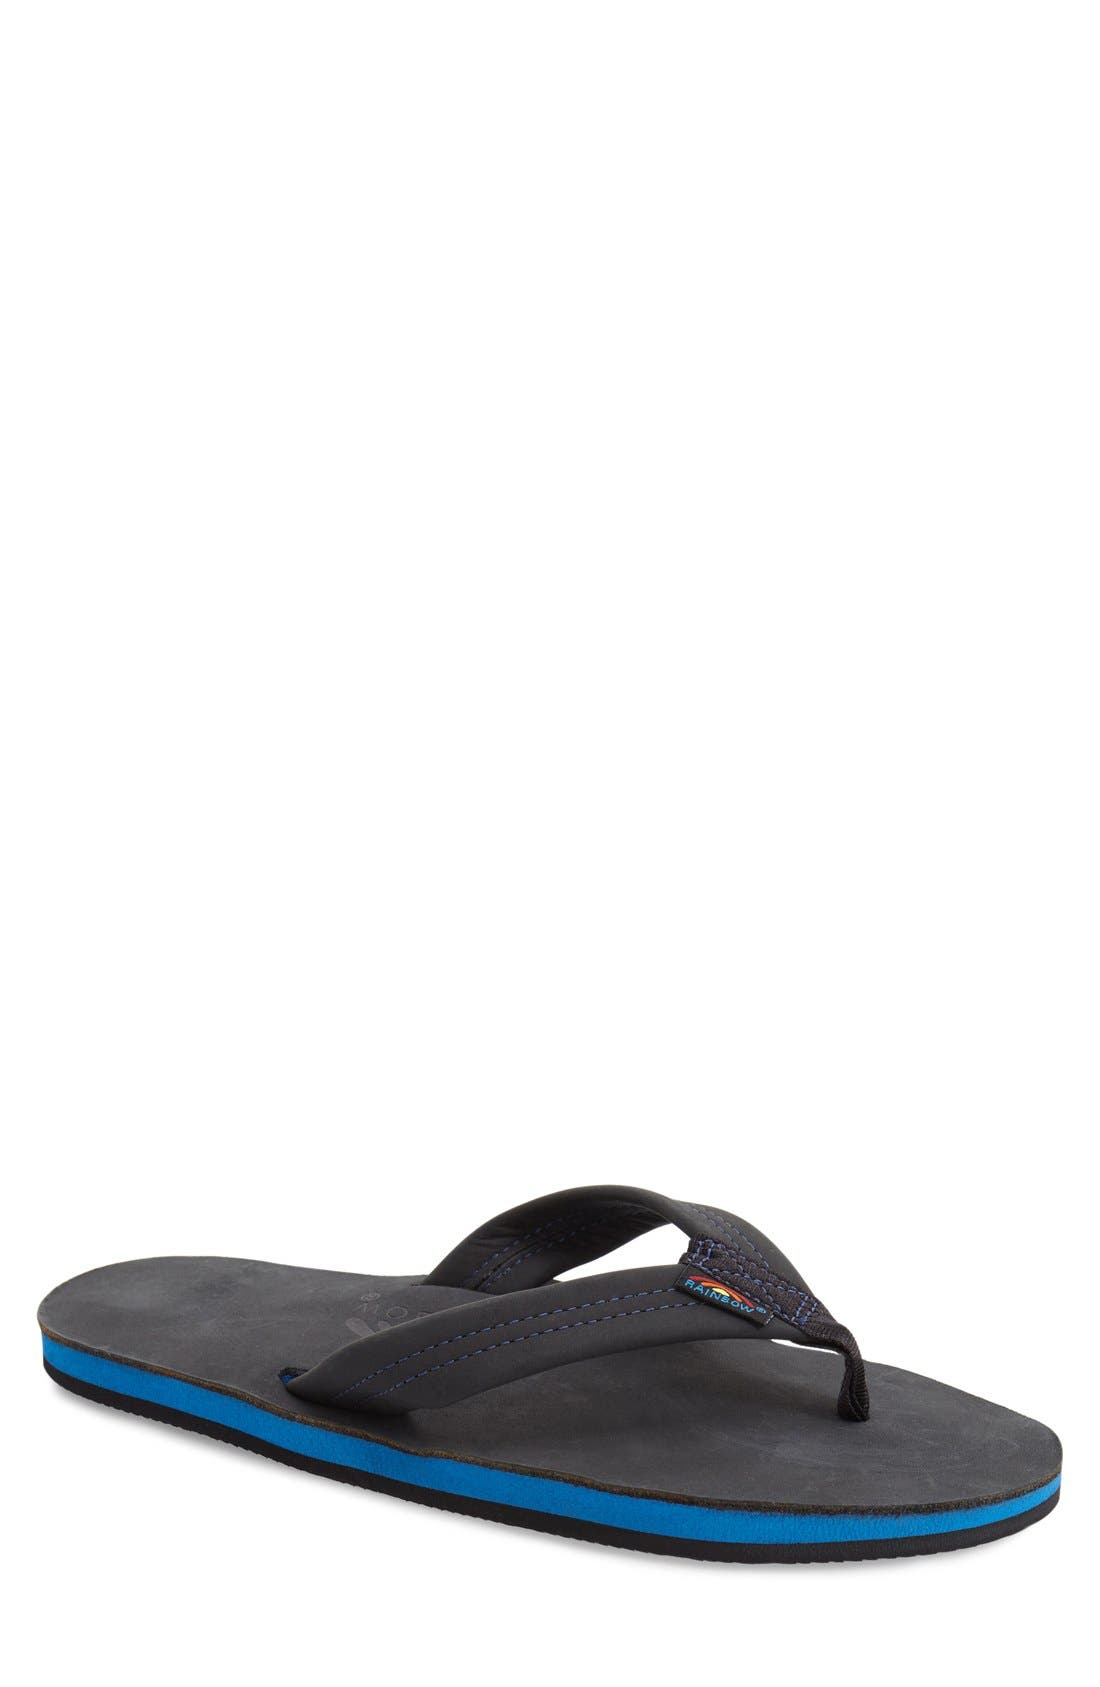 '301Blue' Flip Flop,                             Main thumbnail 1, color,                             Premier Black/ Blue Midsole